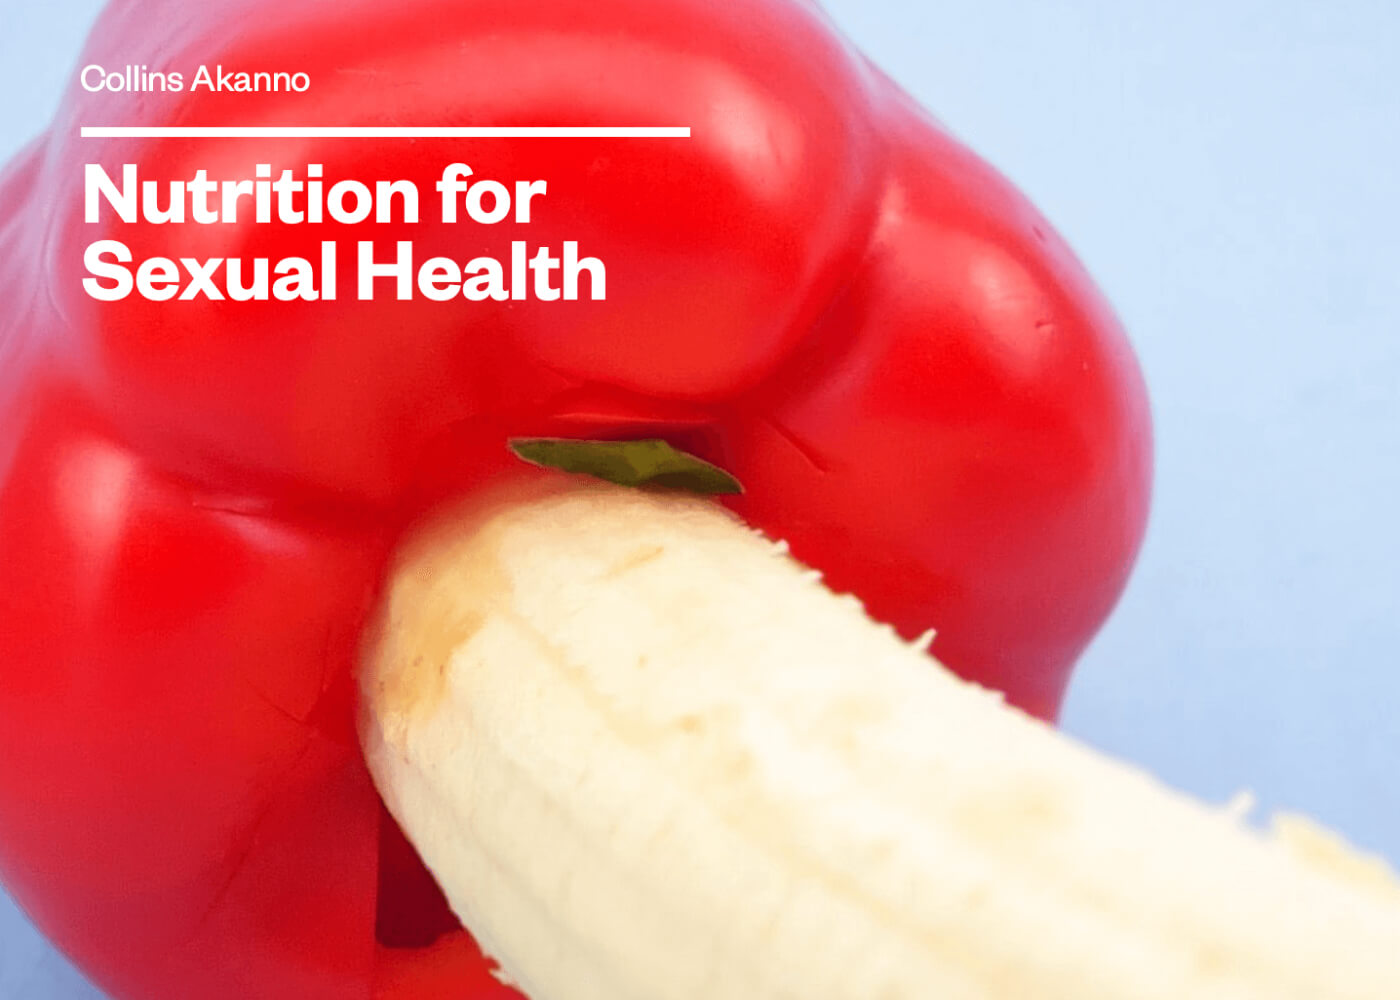 Nutrition for Sexual Health by Collins Akanno